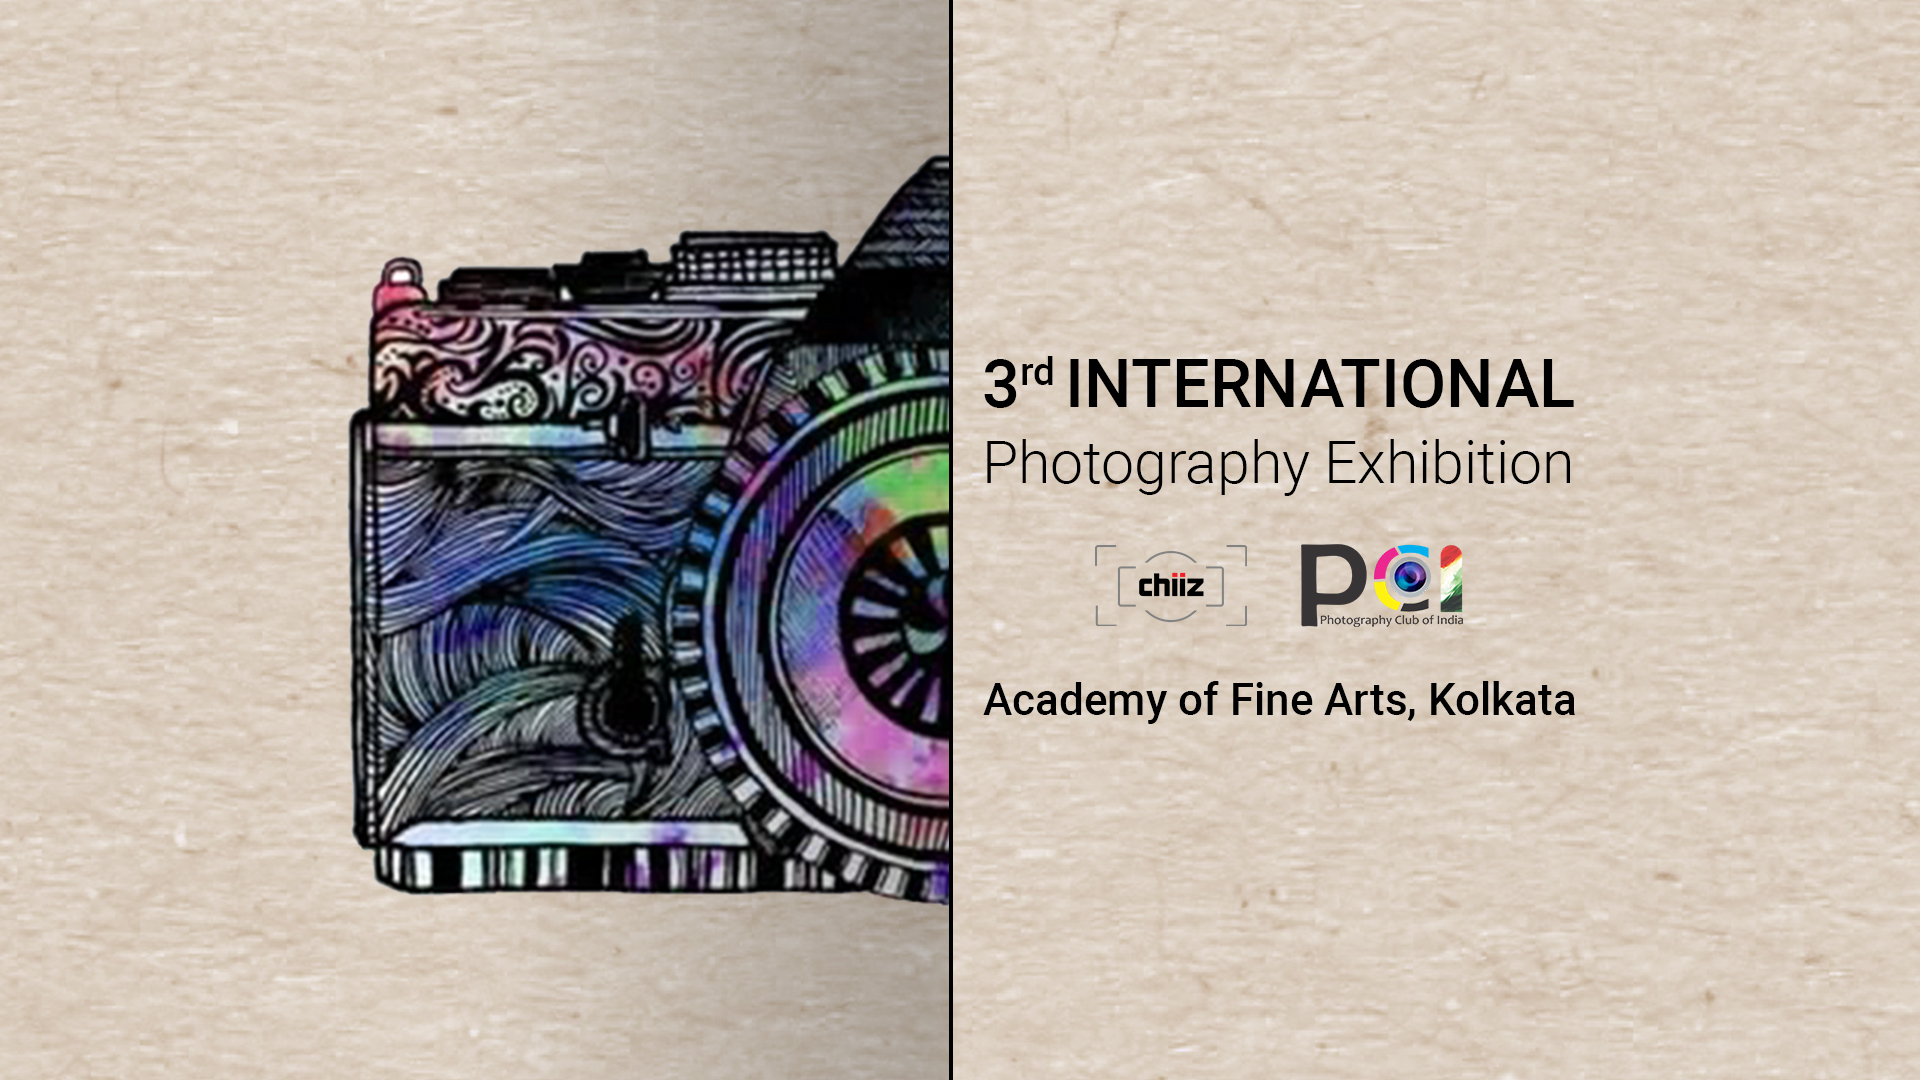 Photography Club of India